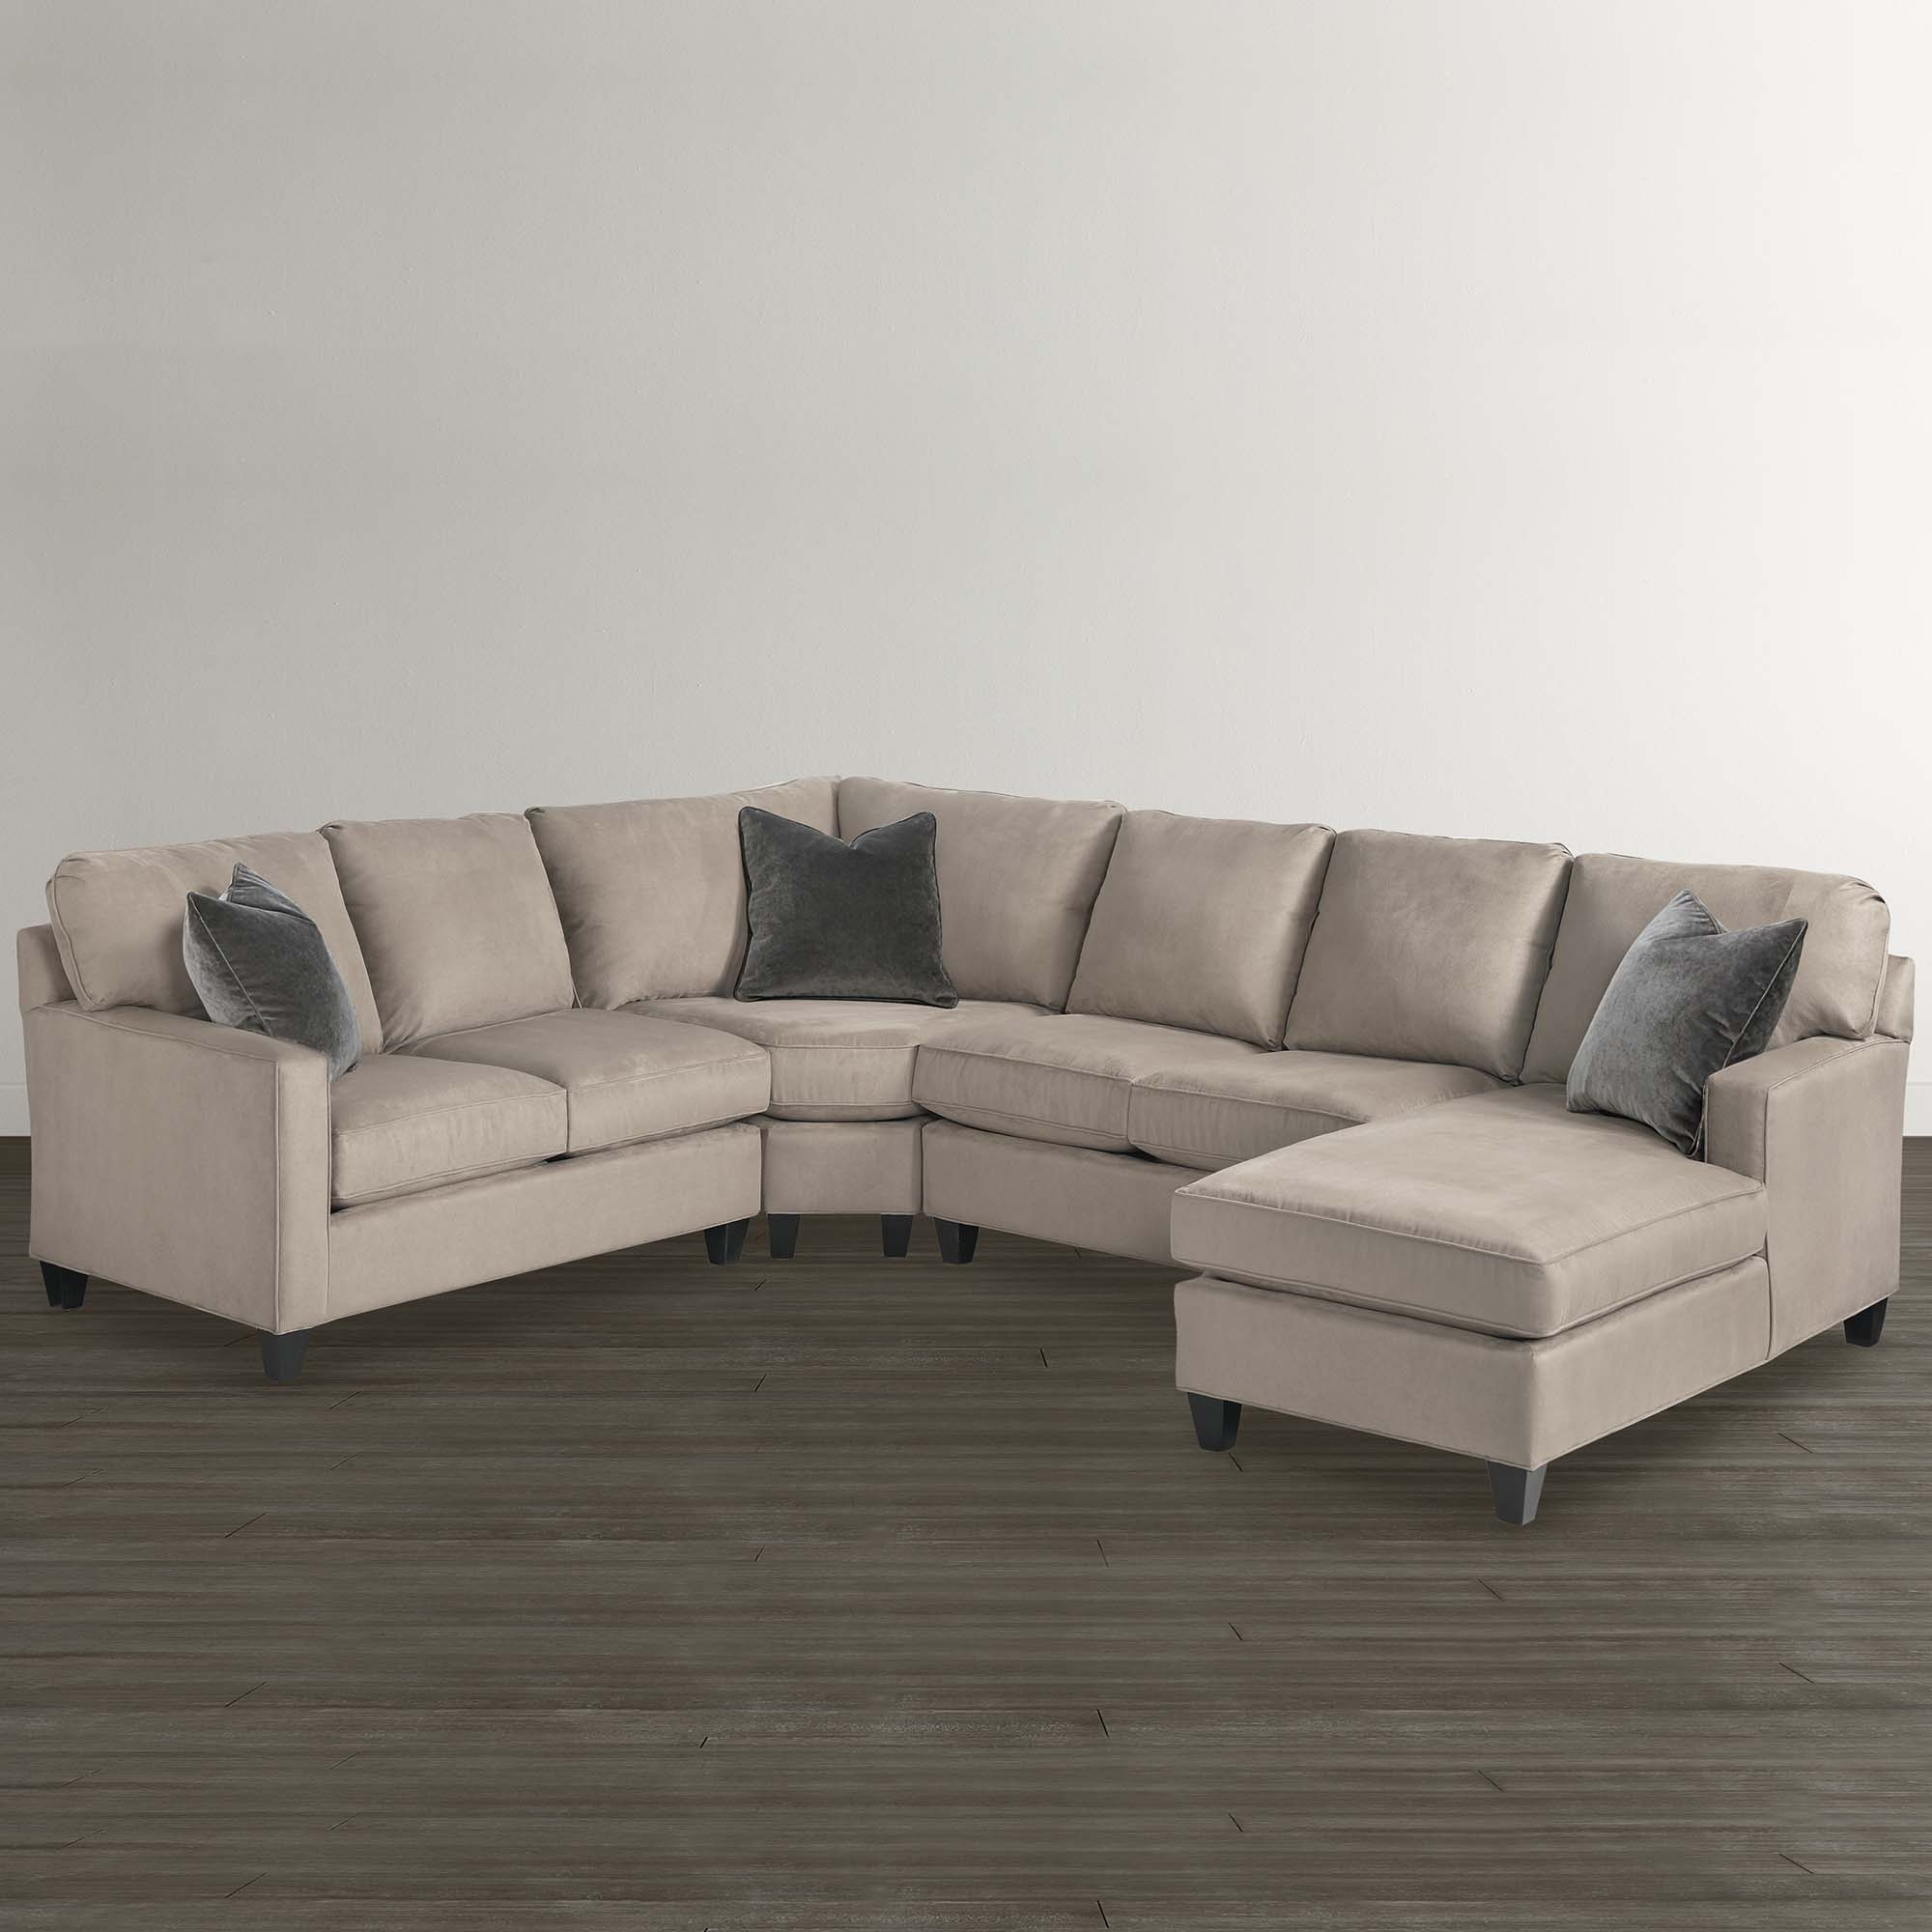 angled sectionals sofas cabin sleeper sofa 15 43 chaise ideas